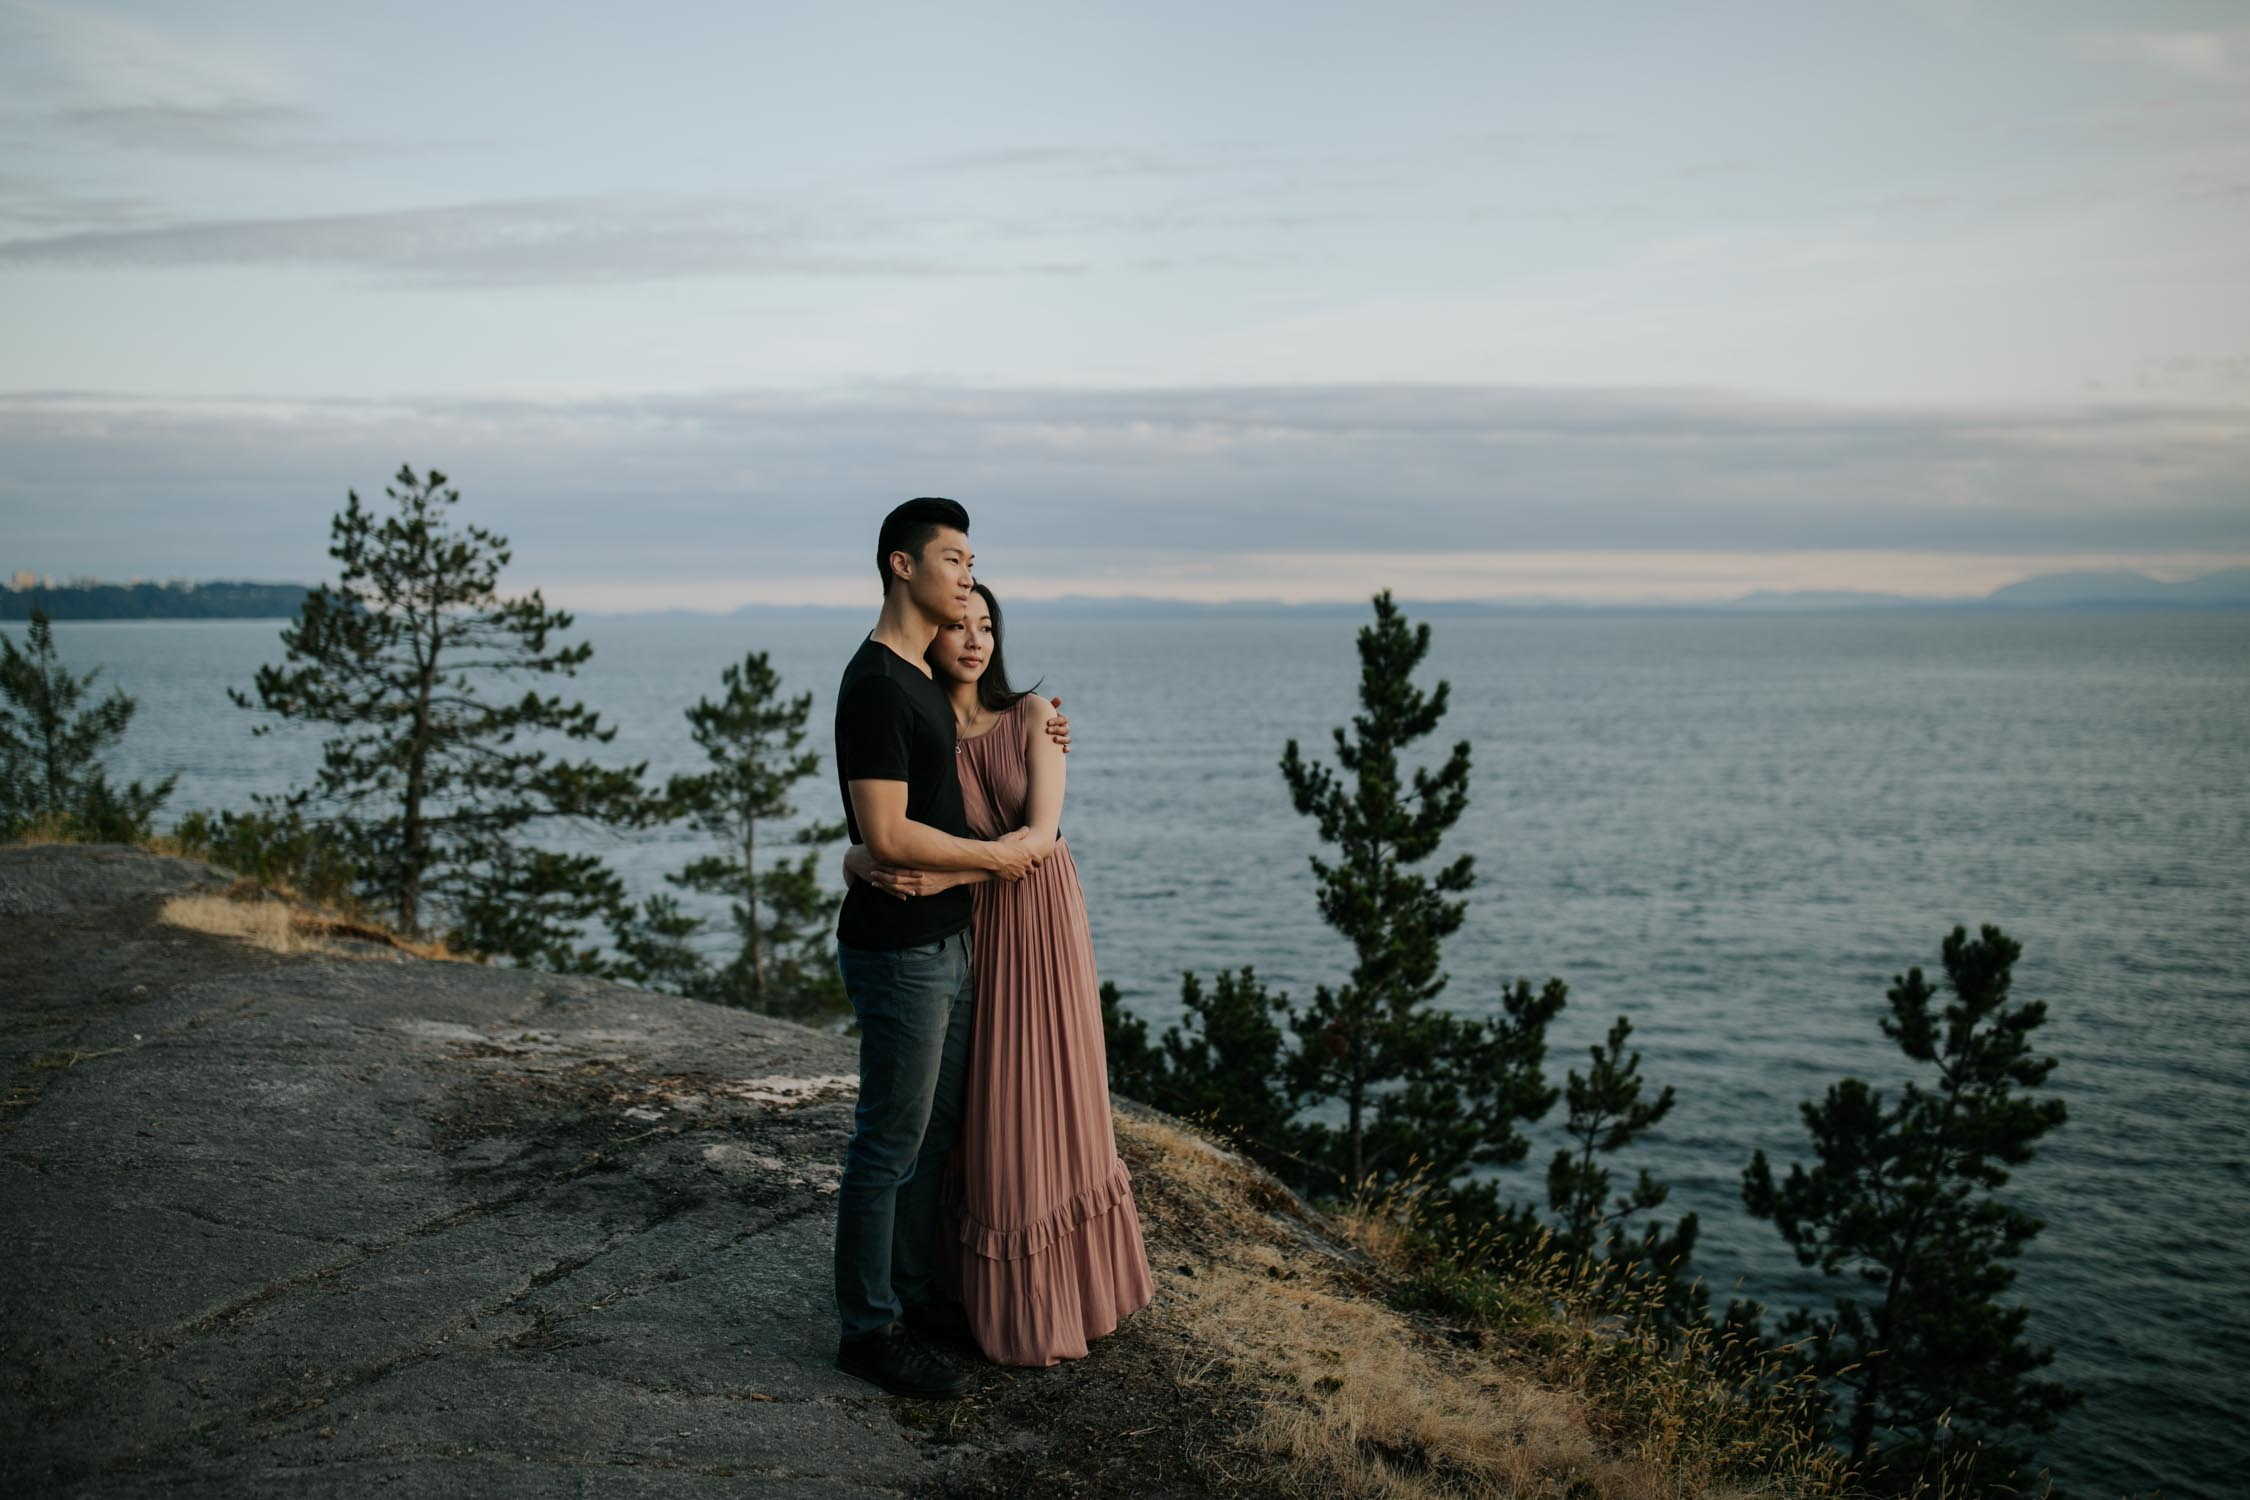 Storyteller Wedding Vancouver Wedding Photographer takes engagement shoot photos of engaged couple at Lighthouse Park at dusk